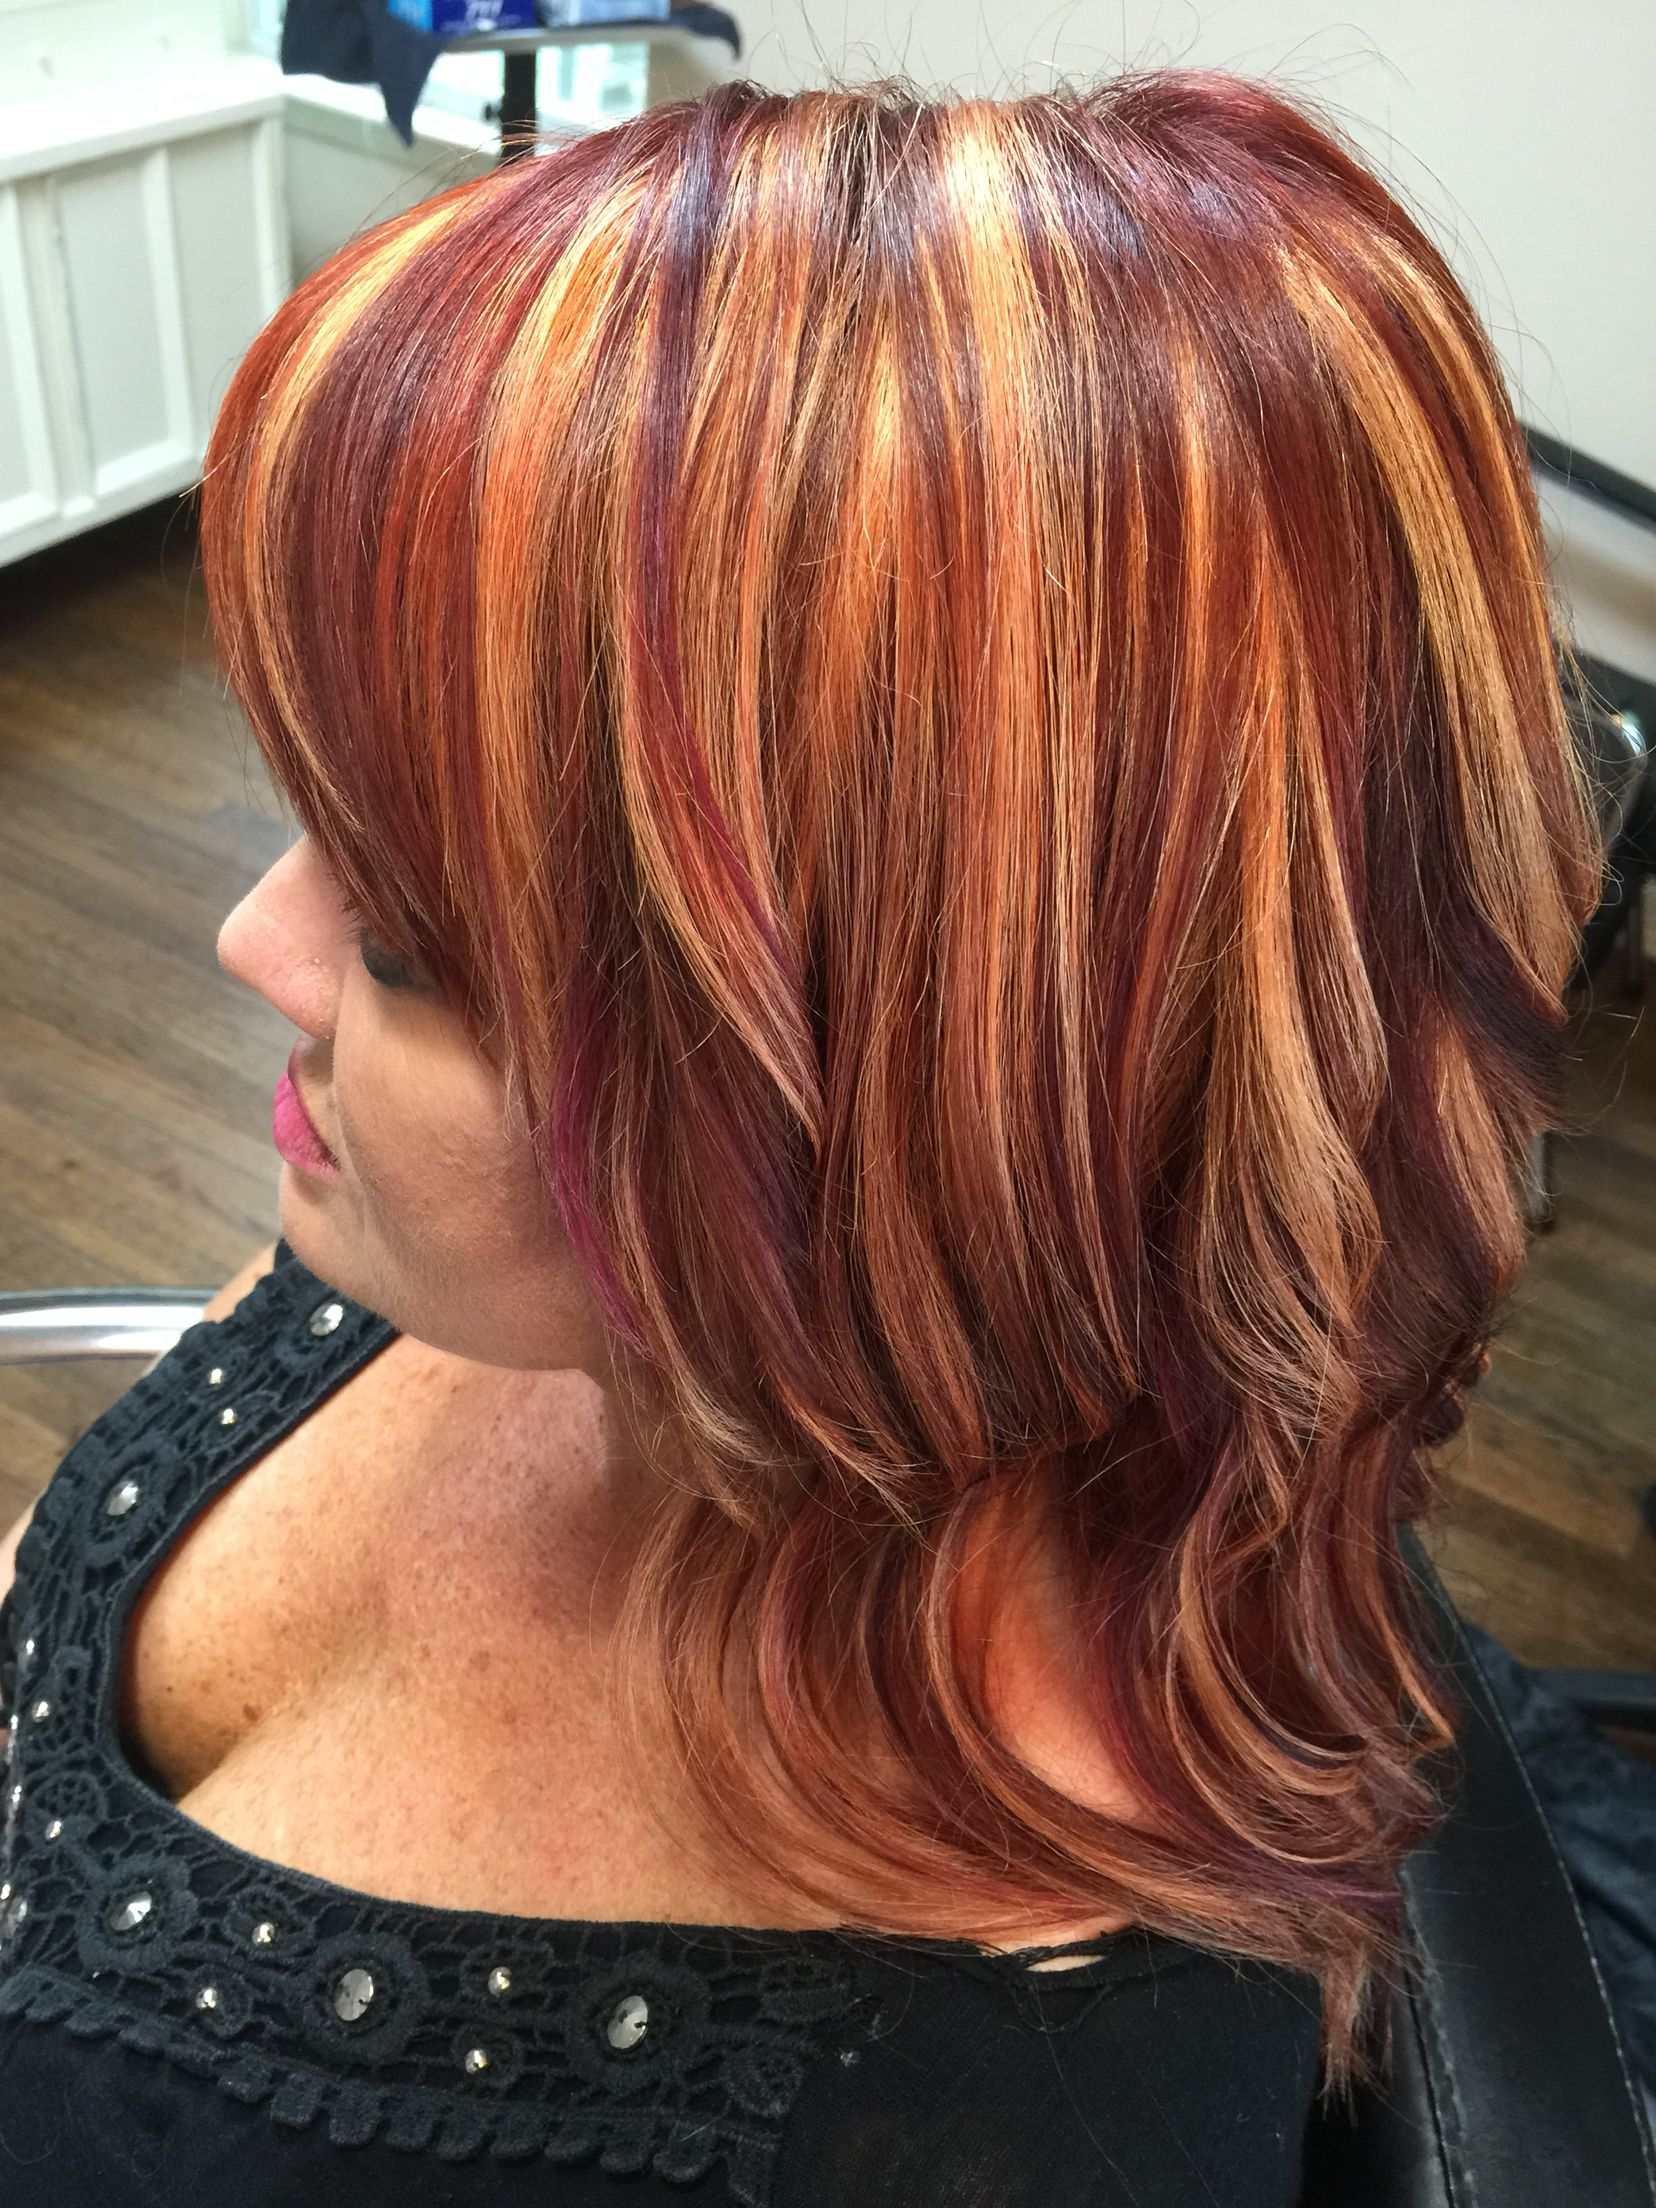 Red Hair Copper And Plum Highlights Hair By Cameron